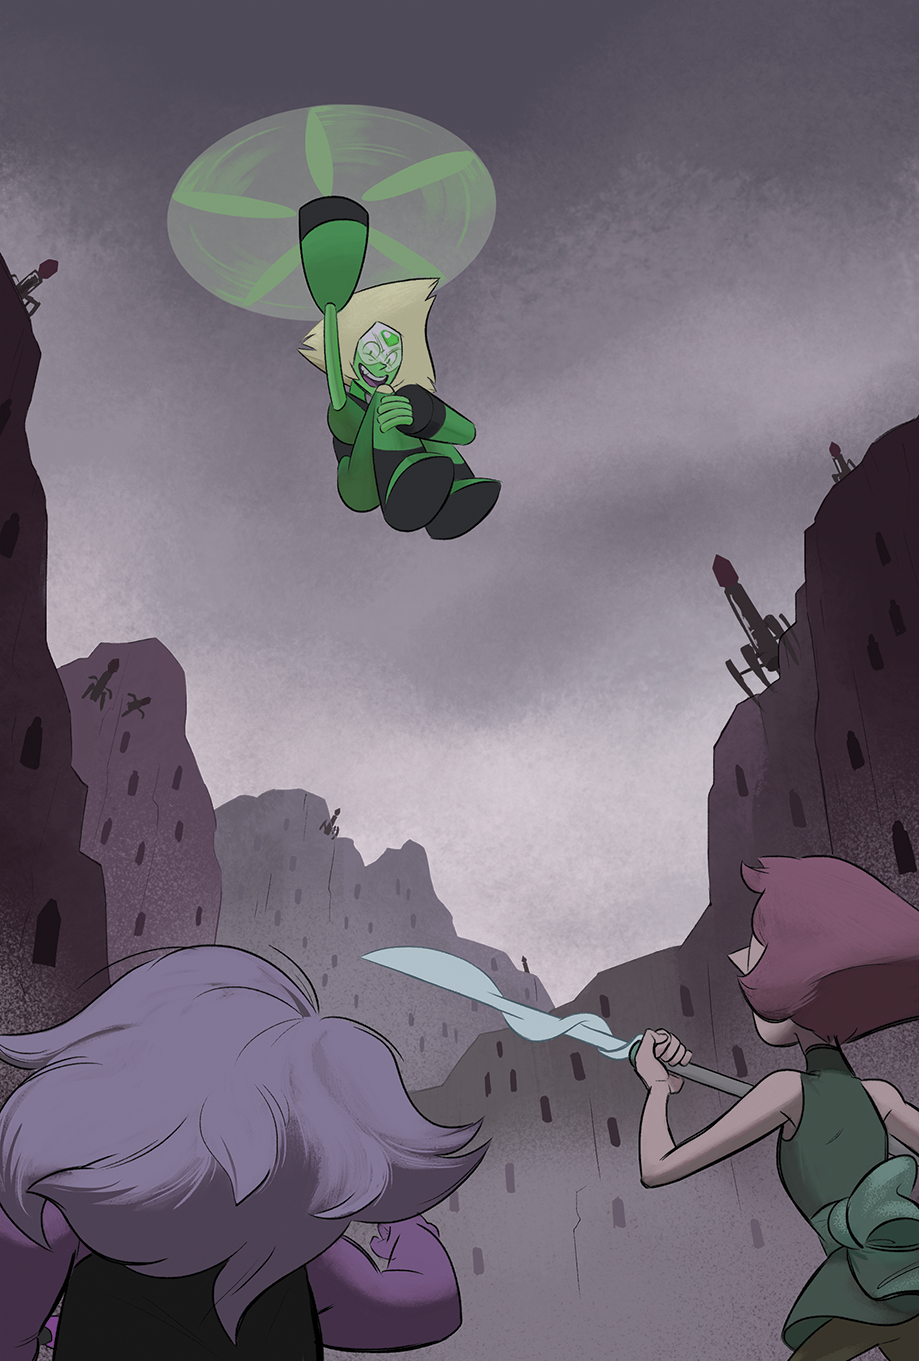 I can finally share my piece for @logdatezine2016, drew this back in November! It was a little rushed due to lack of time but I'm happy with it. I really miss villain Peridot from the early episodes...